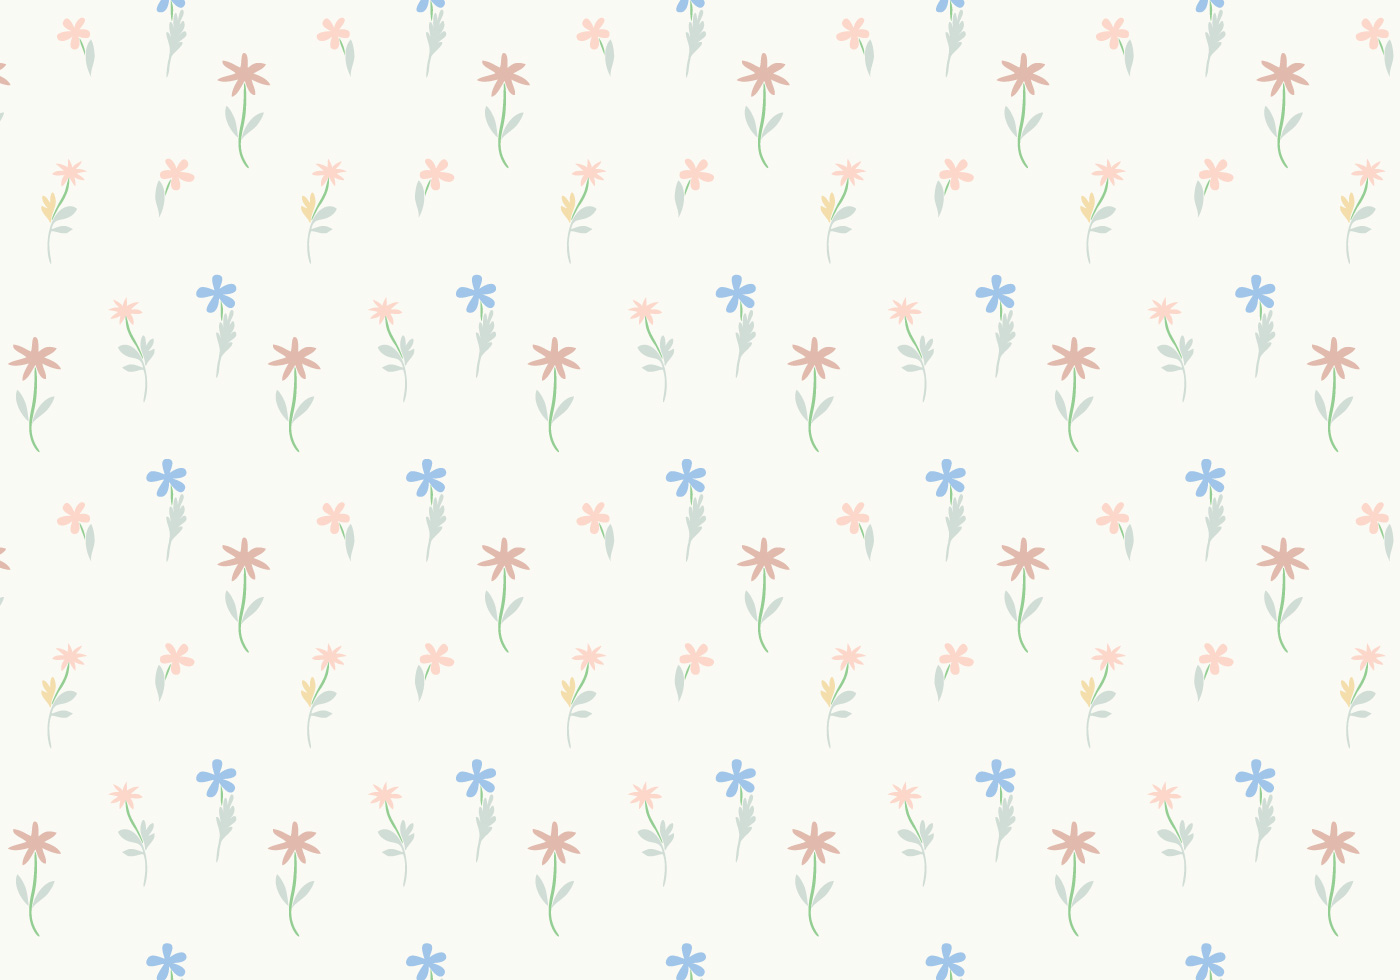 pastel flowers pattern background vector download free vector art  stock graphics   images free vector filigree corner filigree vector